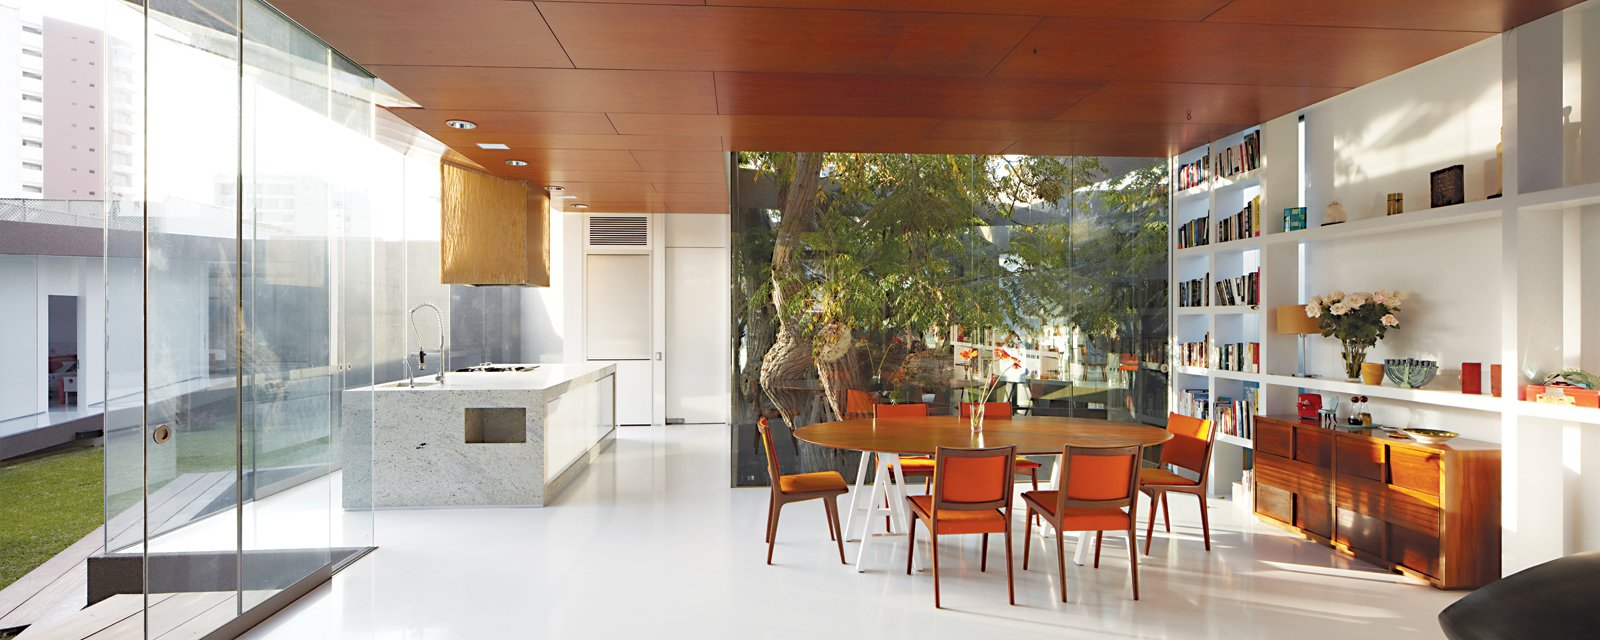 The dining area holds an adjunct kitchen designed for Lisette, a chef; the table base was repurposed from one from her former restaurant.  Photo 3 of 13 in A Modern Concrete Home in Peru